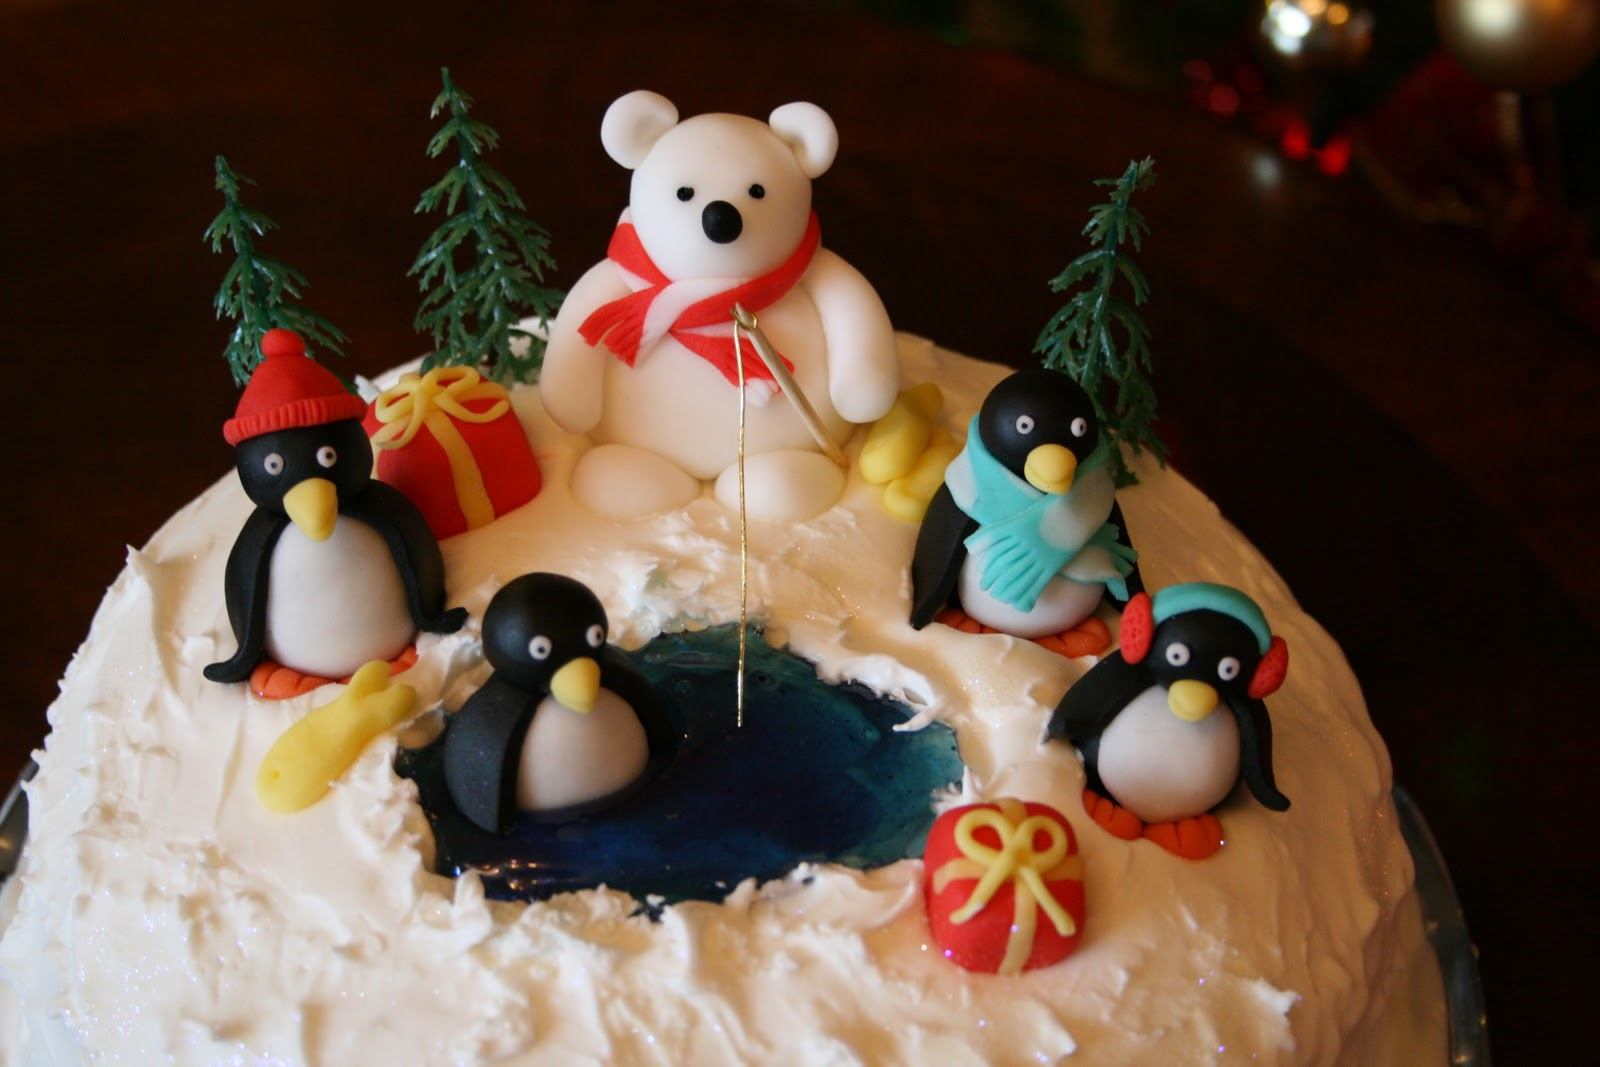 Christmas Cake Ideas Penguins : lauralovescakes...: Penguin Party Christmas Cake